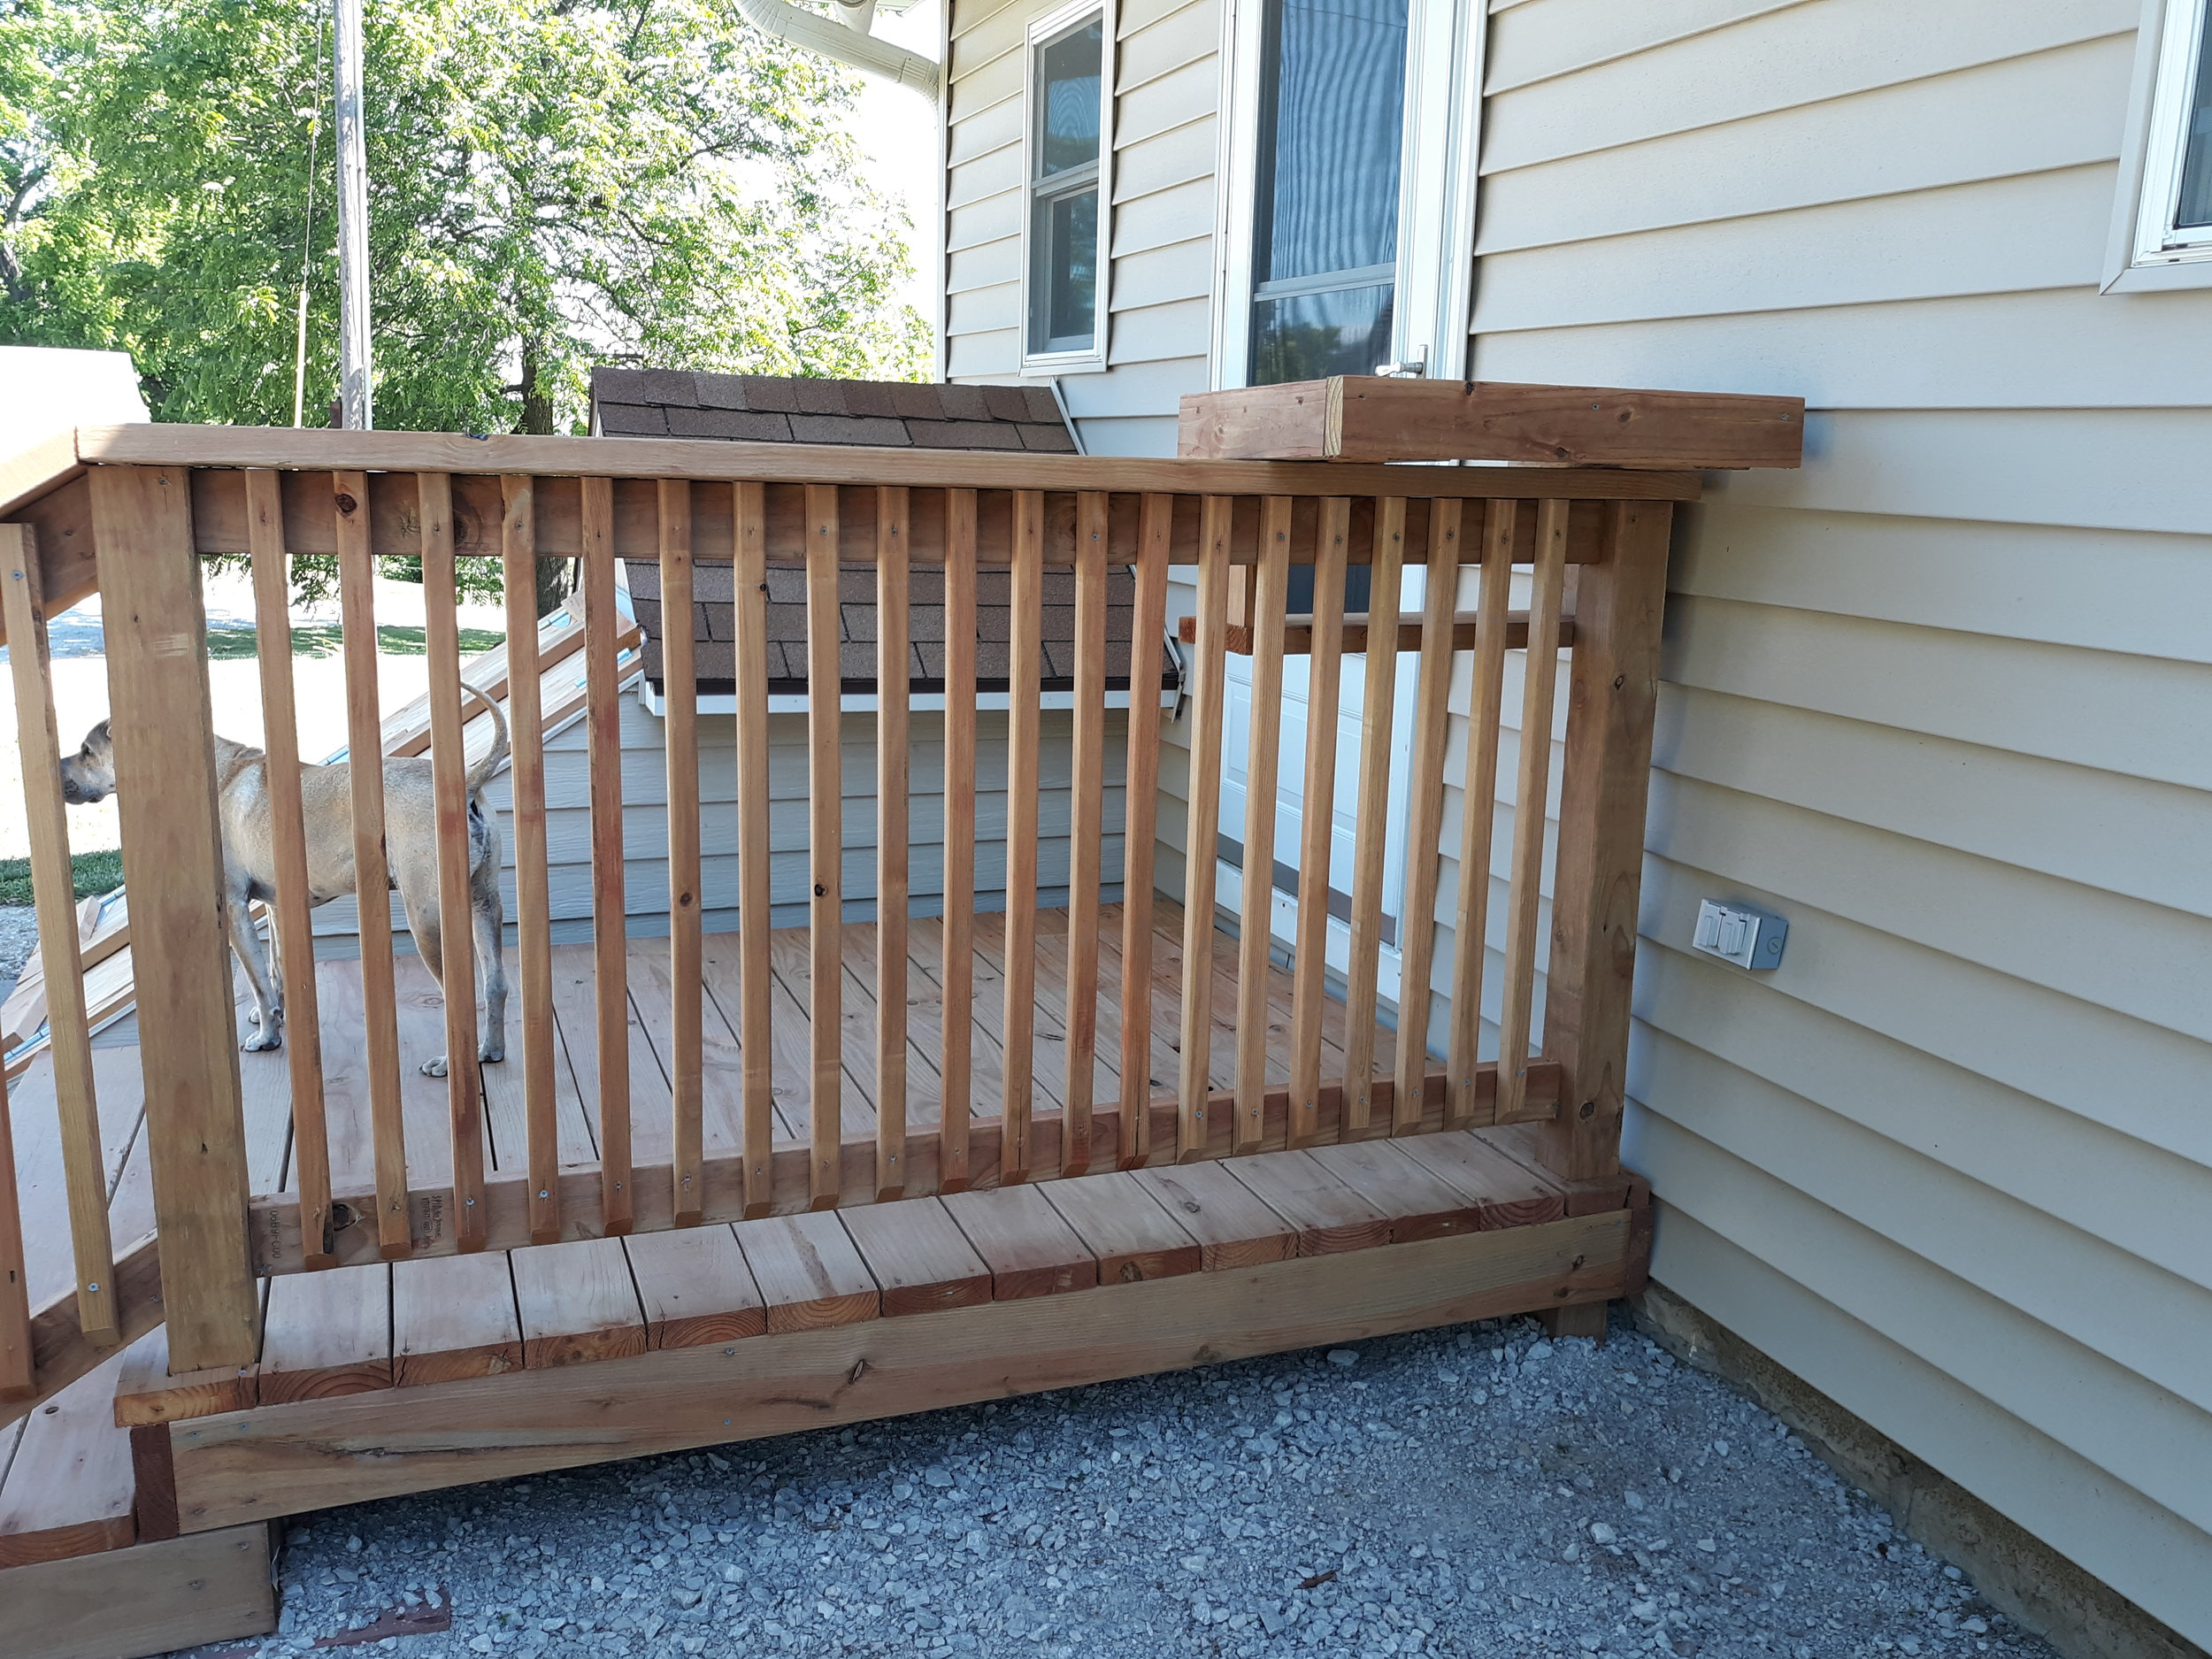 Photo of the rail and balusters on the new stoop.